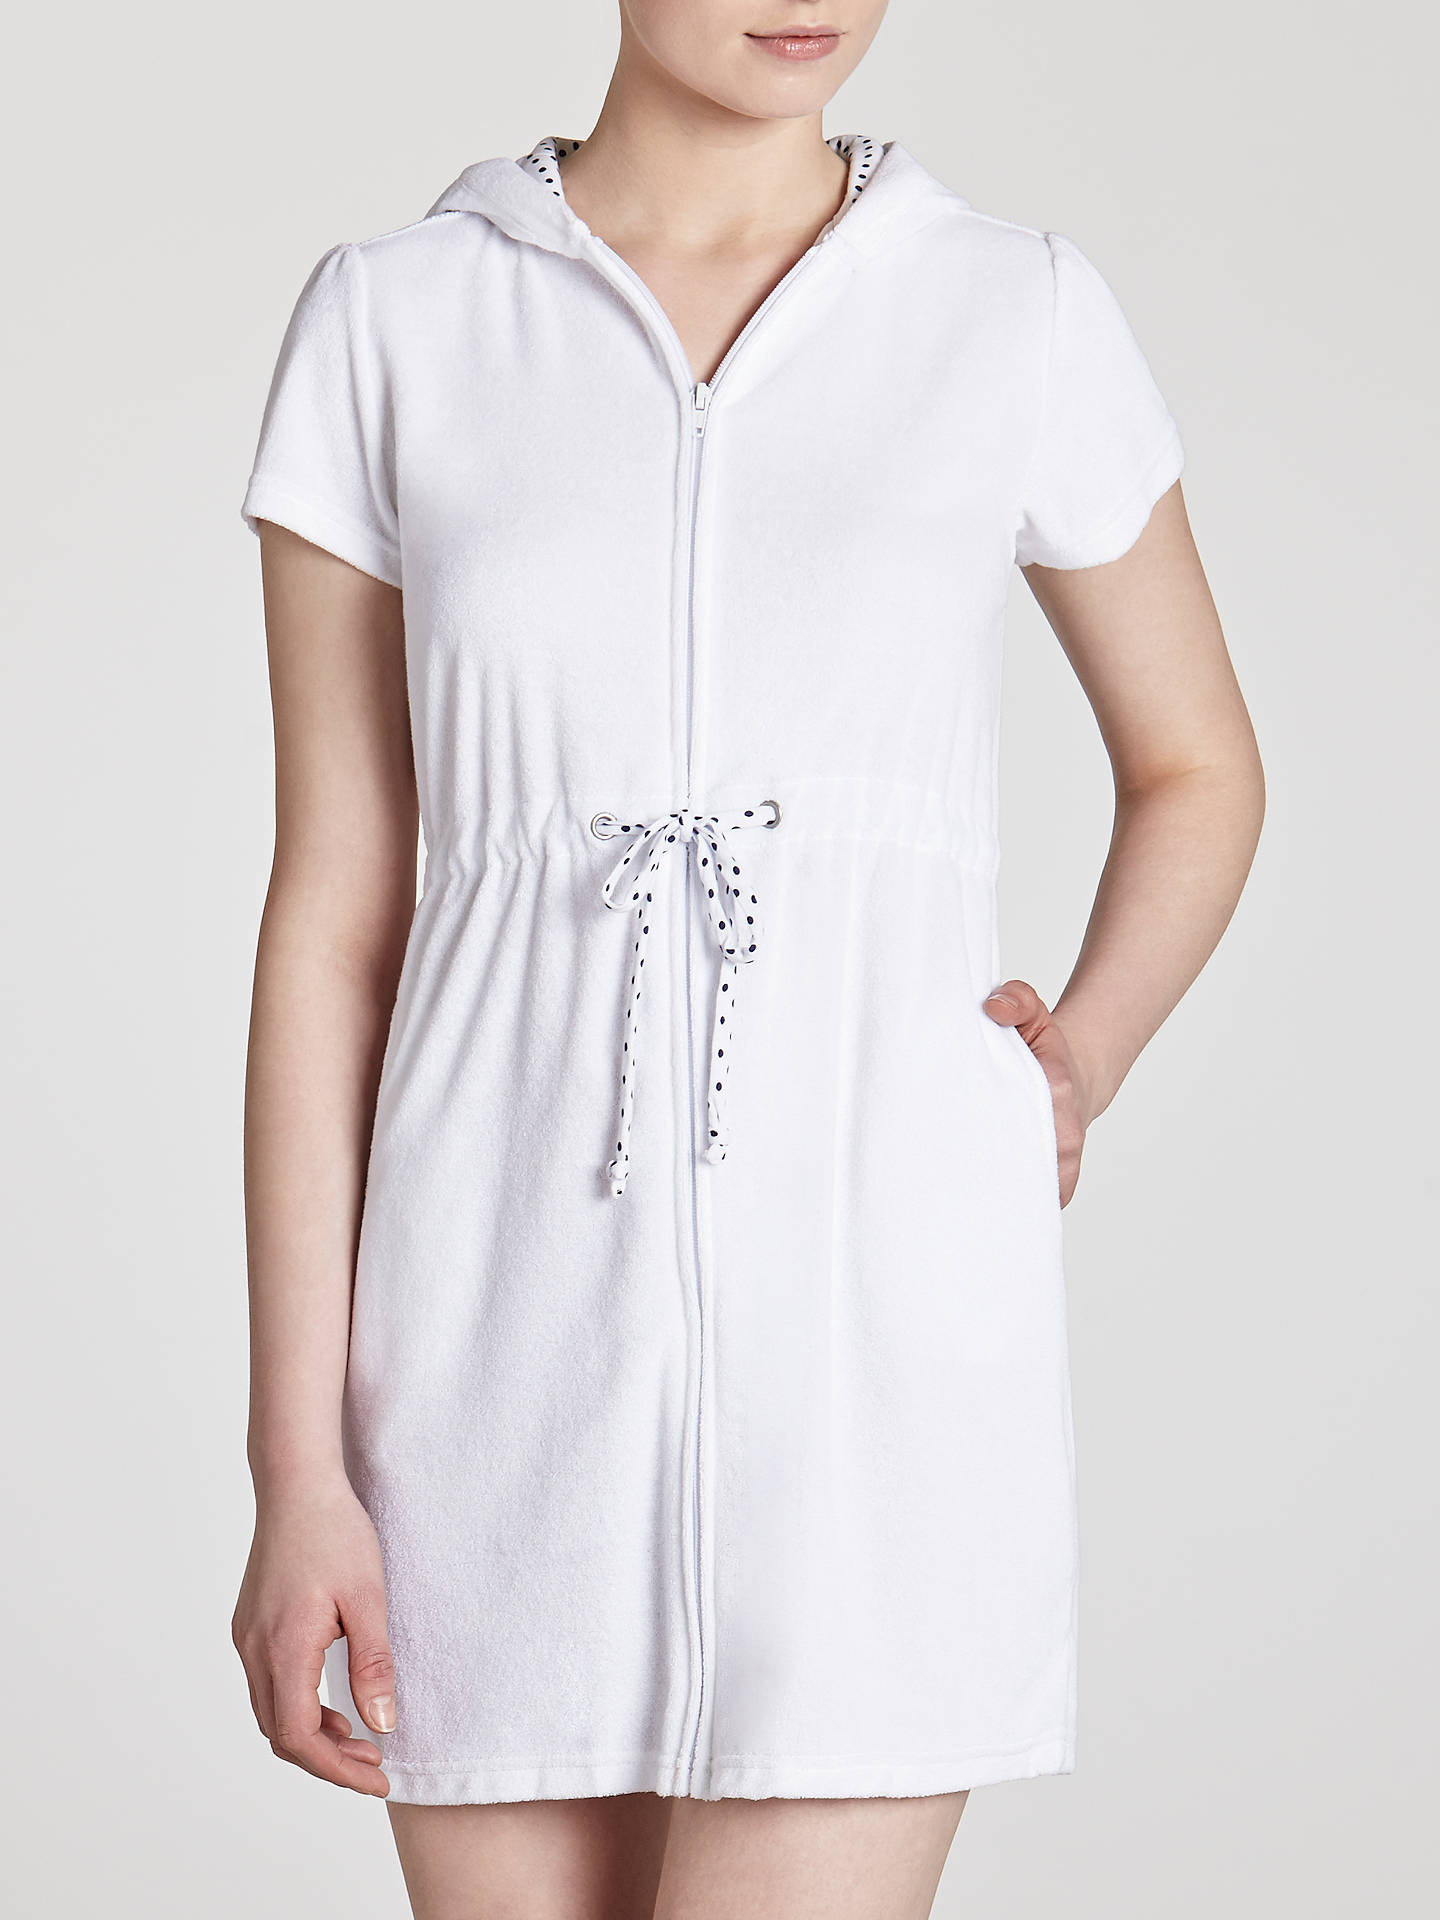 fd6b5dd7fd Buy John Lewis Zip Toweling Cover Up Dress, White, S Online at johnlewis.